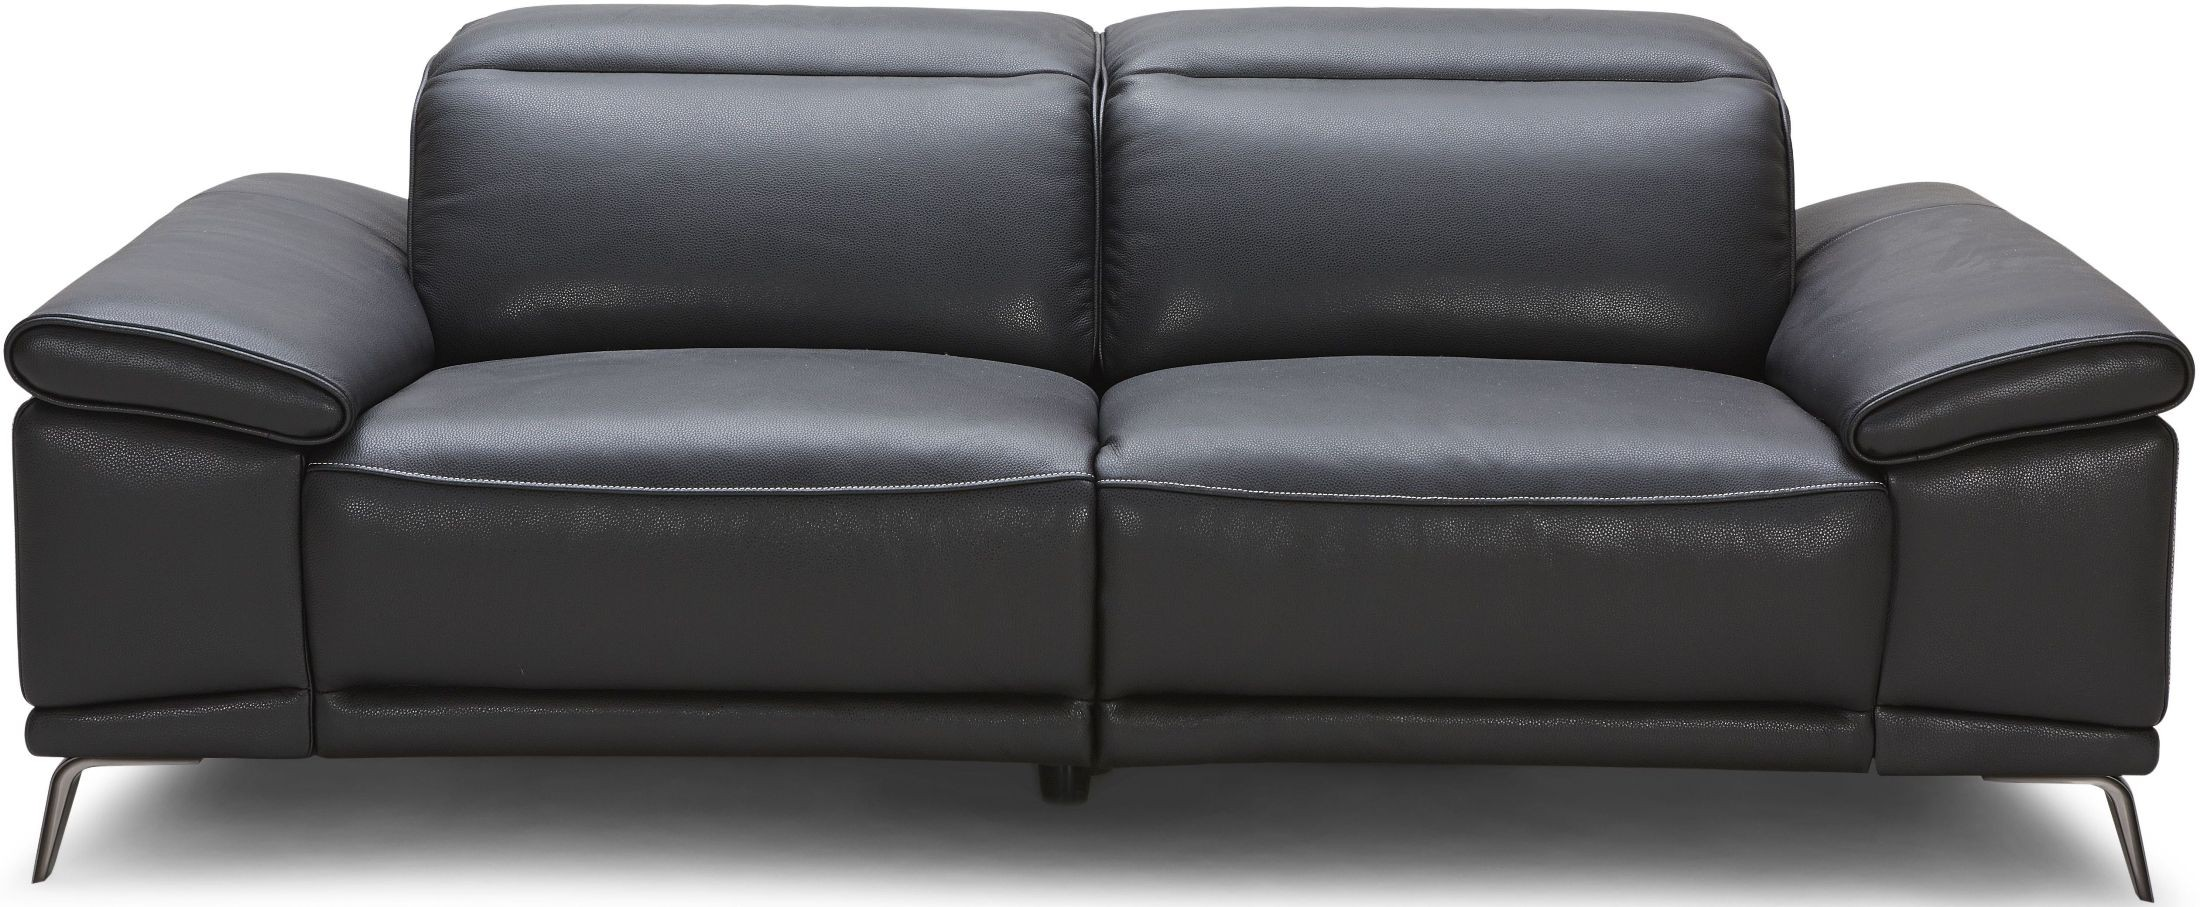 Giovani Black Leather Power Reclining Sofa From Jnm Coleman Furniture